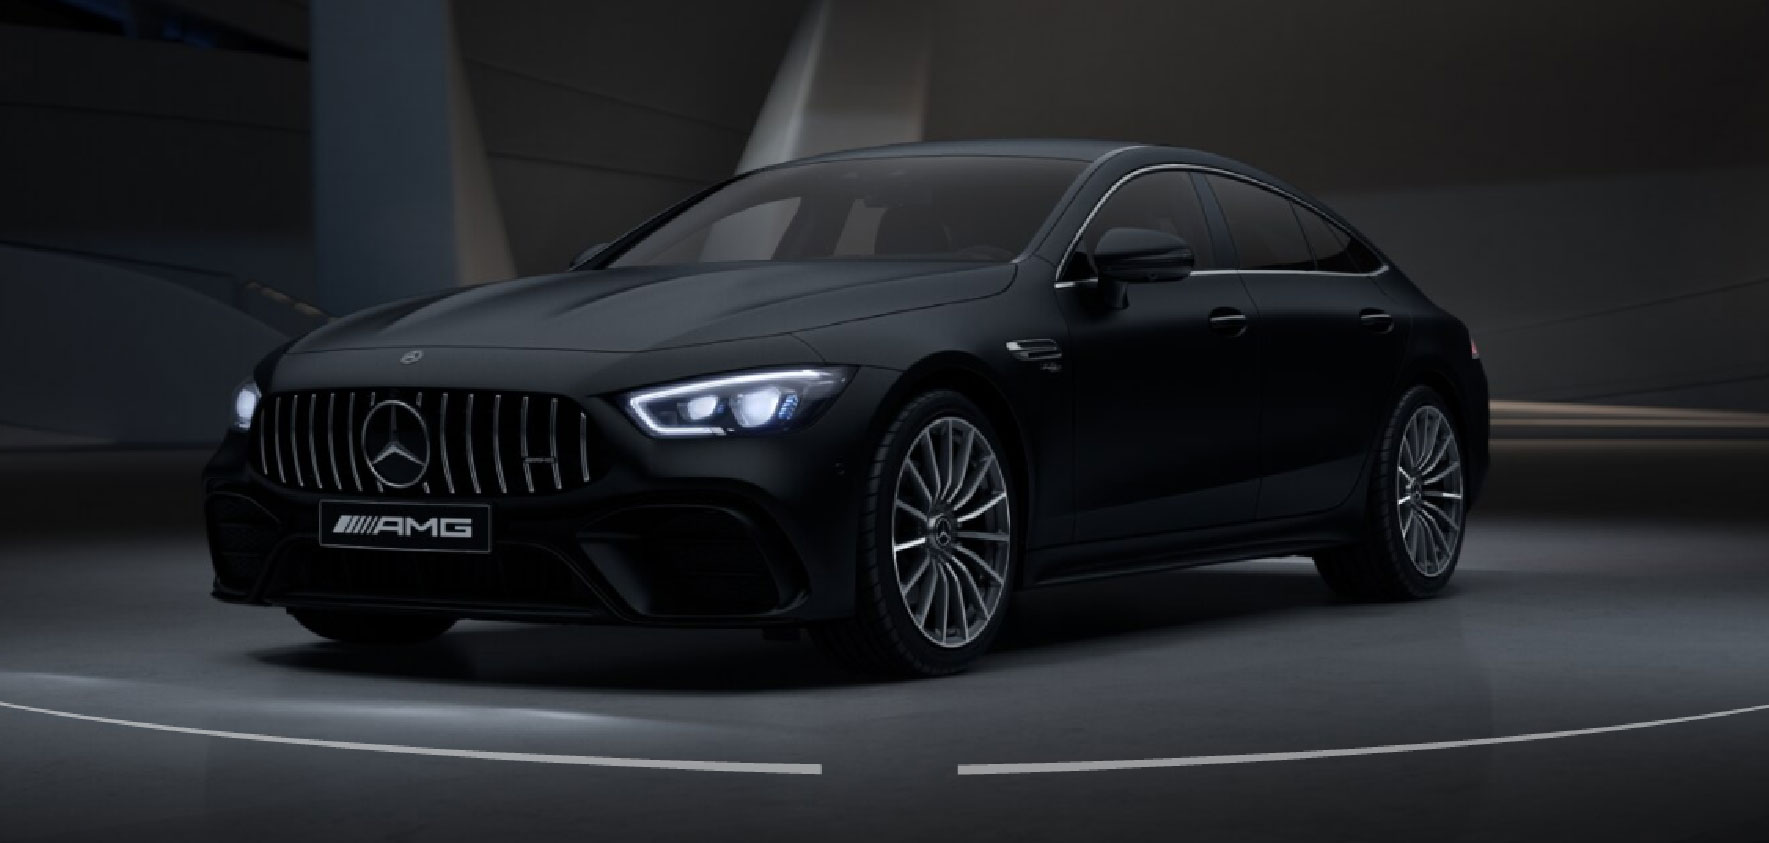 Mercedes-AMG GT 63 S 4MATIC фары